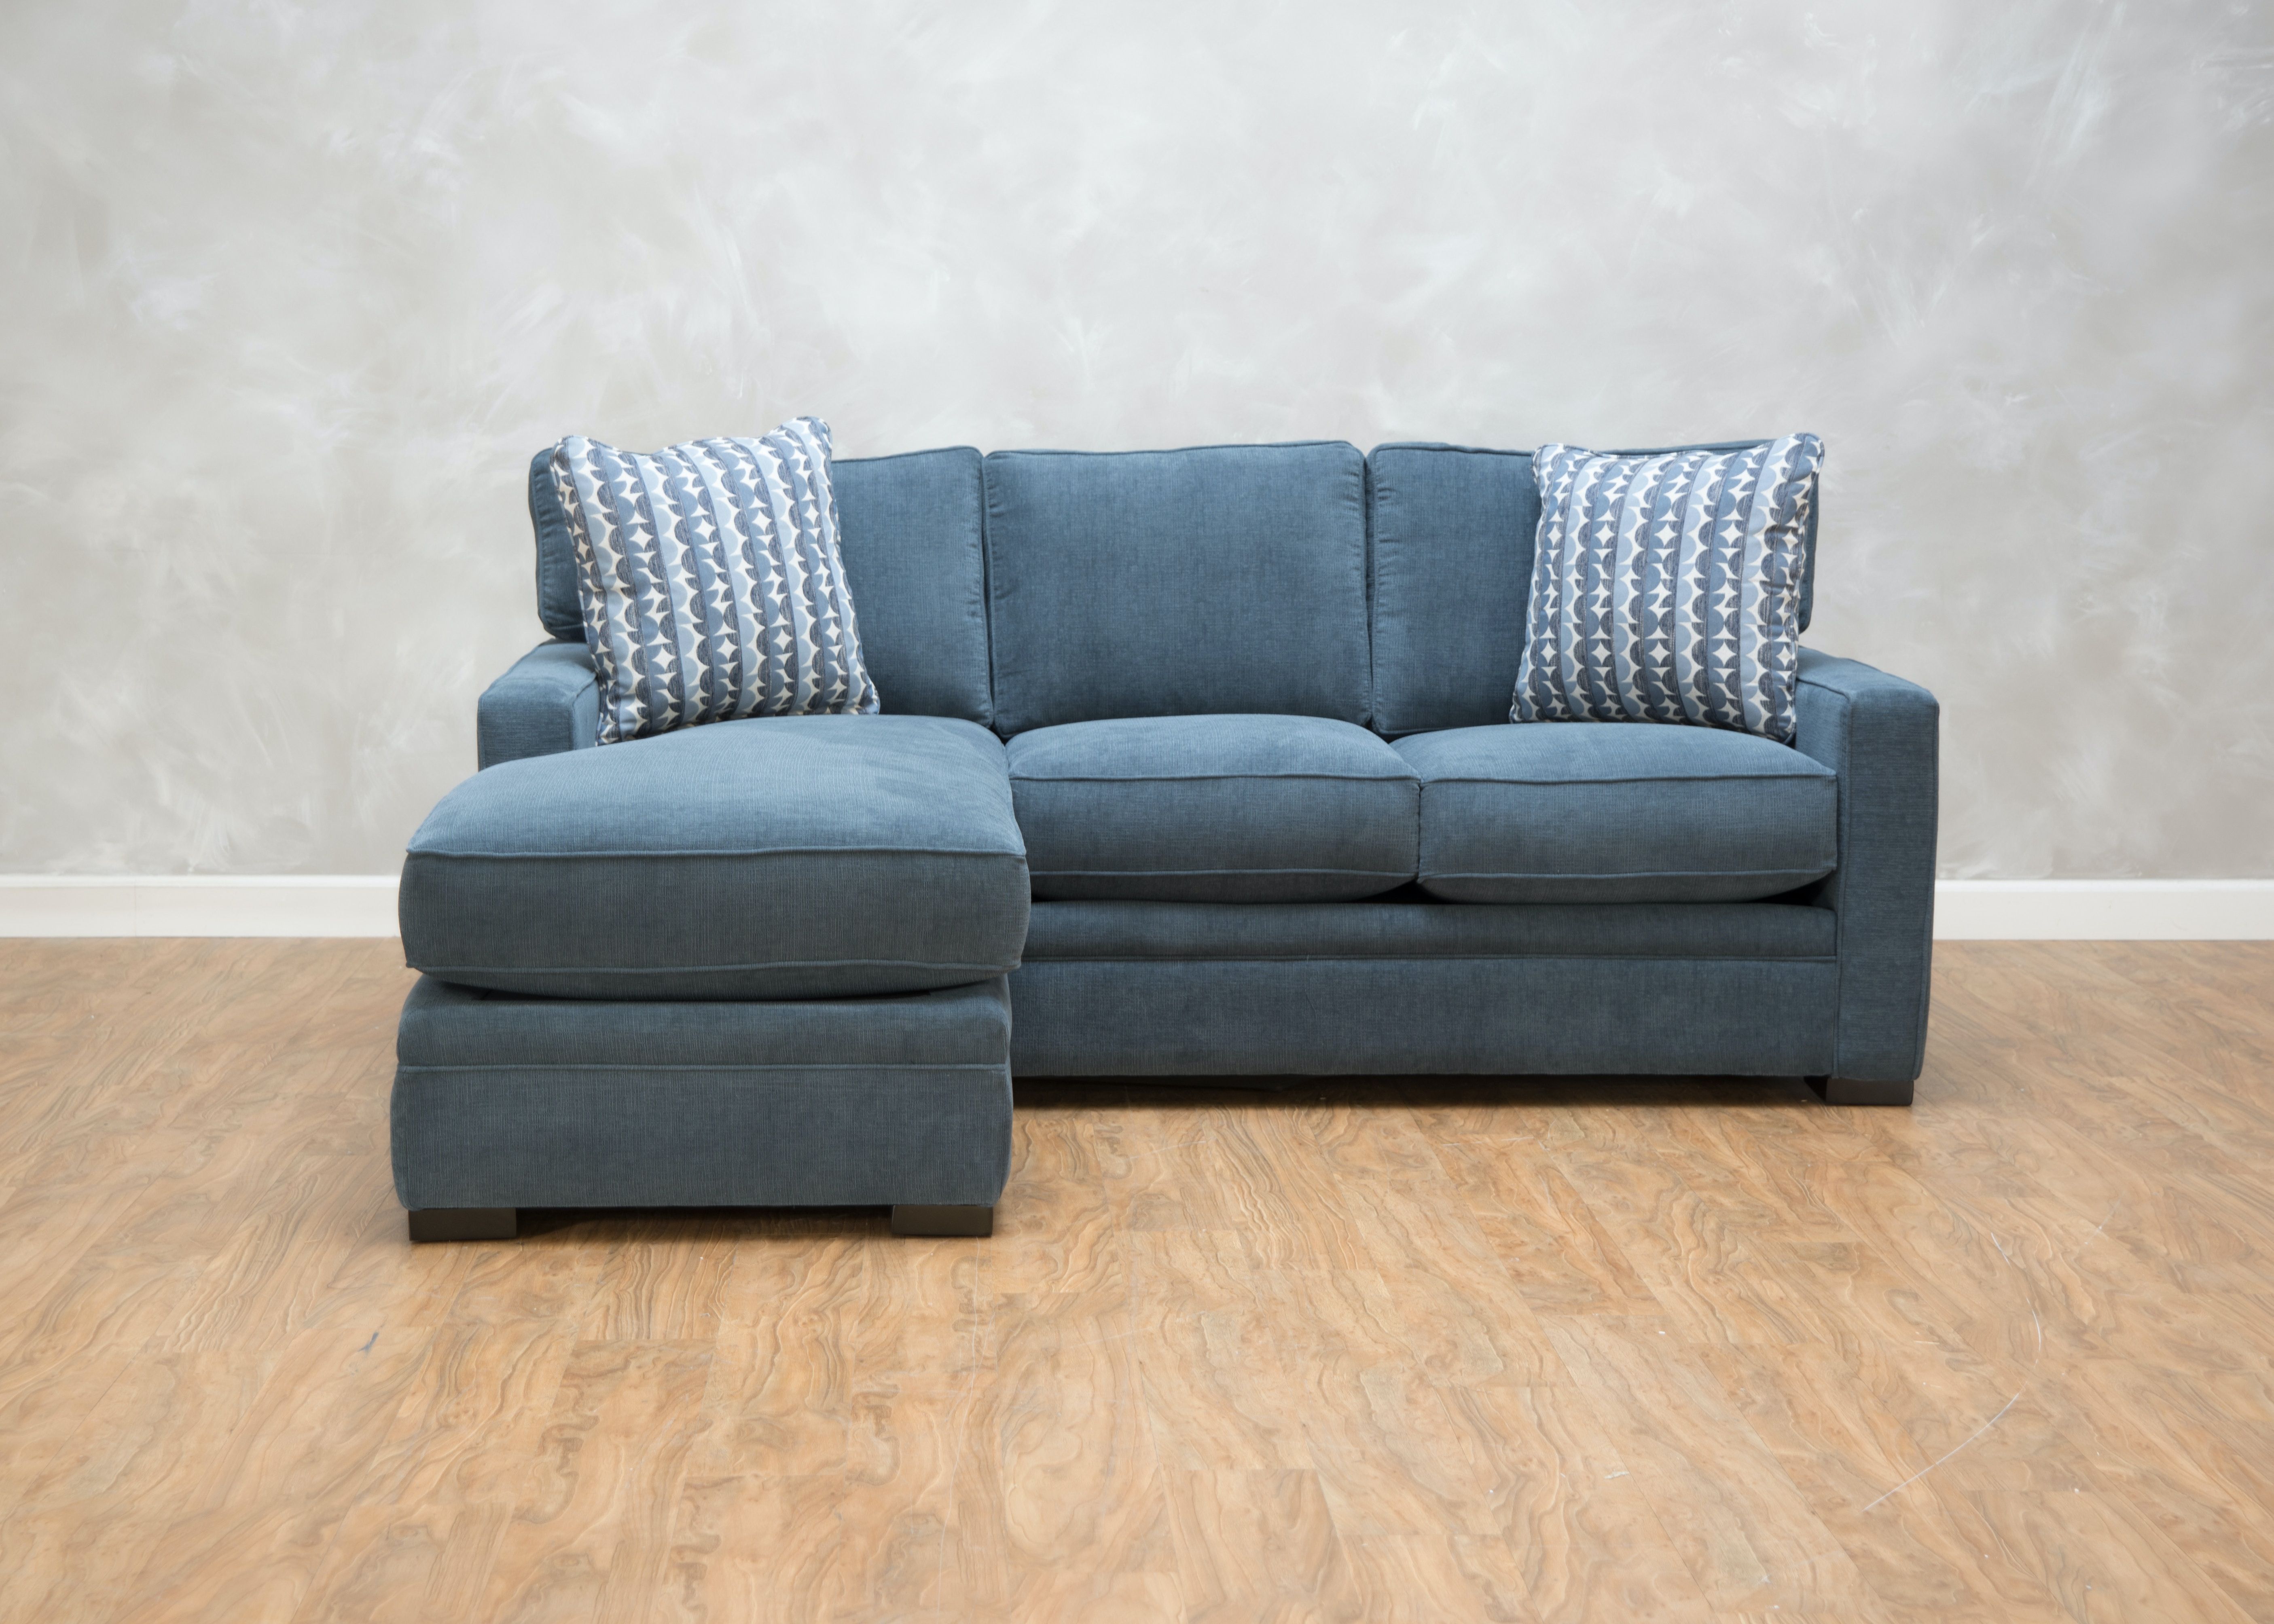 fill disco modern bed ideas furniture spaces sectionals your sectional clearance on home living loveseats flanigan for discount sofas loveseat couches and cheap with raymour room coupon recliners comfy sofa